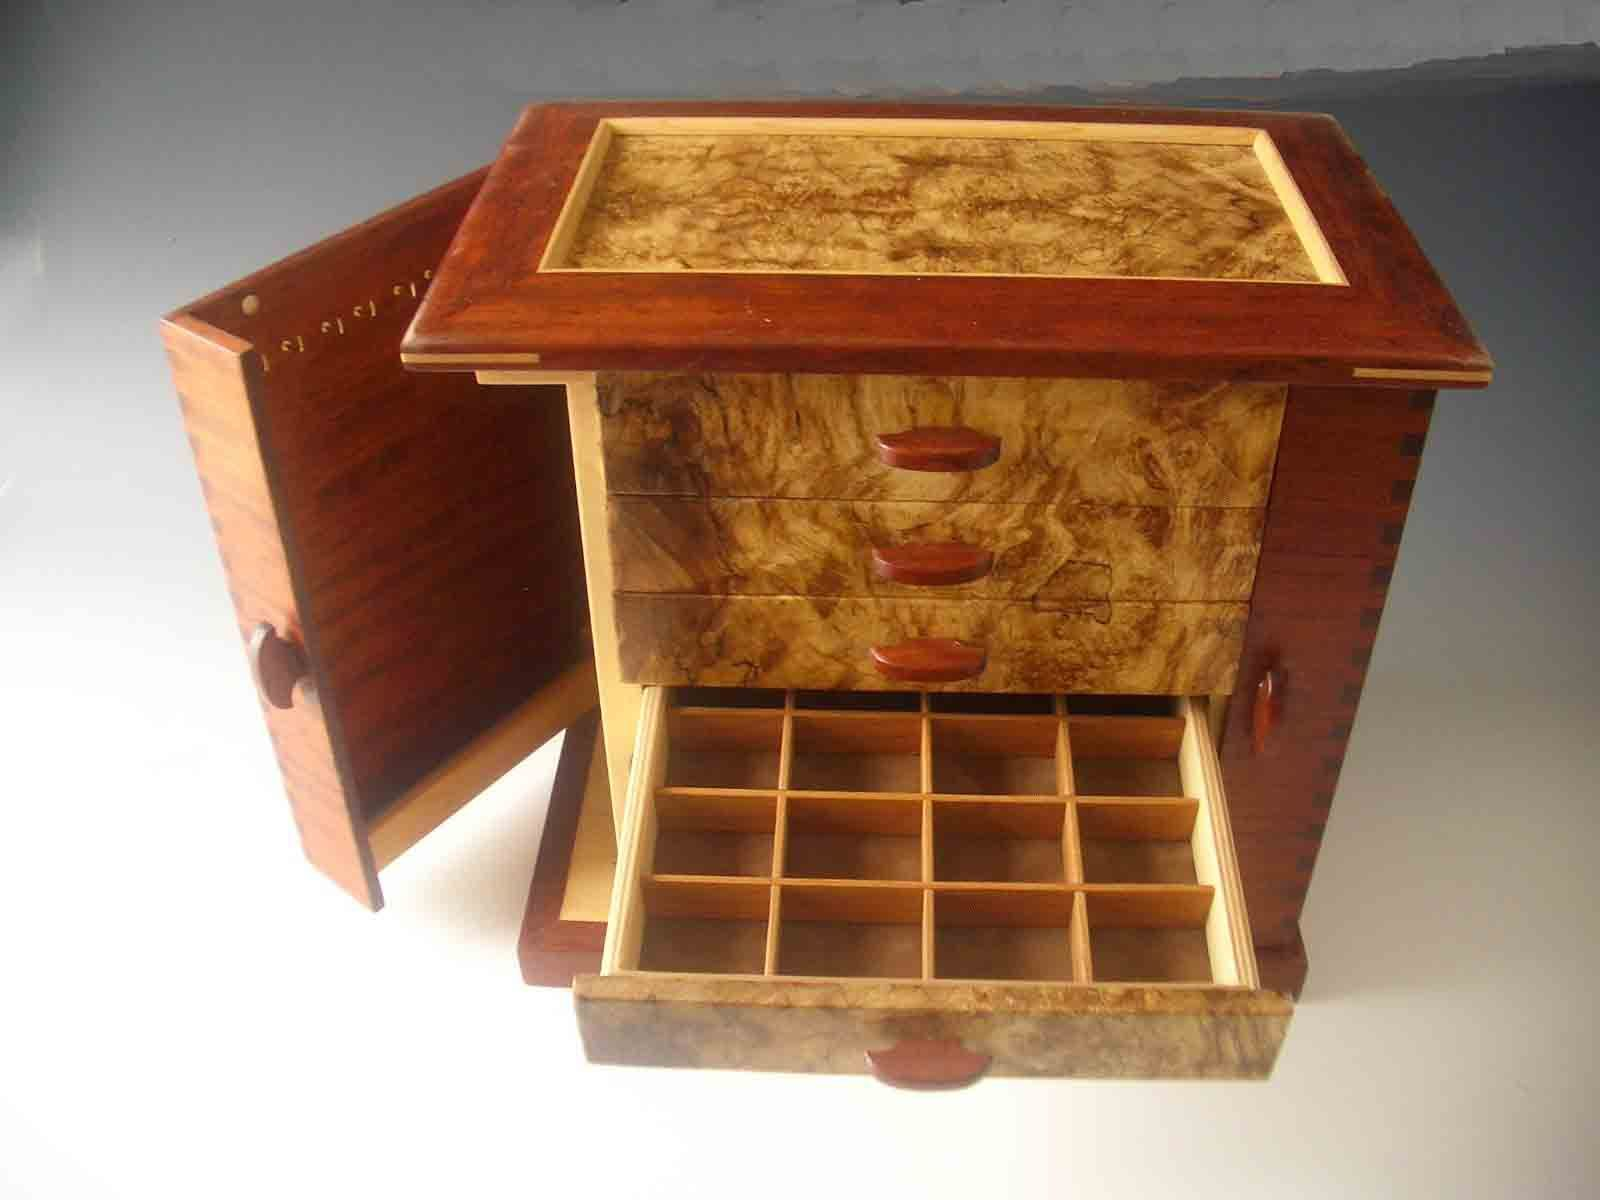 Handcrafted wood jewelry boxes - Handcrafted Necklace Holders Jewelry Box Made Of Exotic Wood With Two Doors That Swing Open To